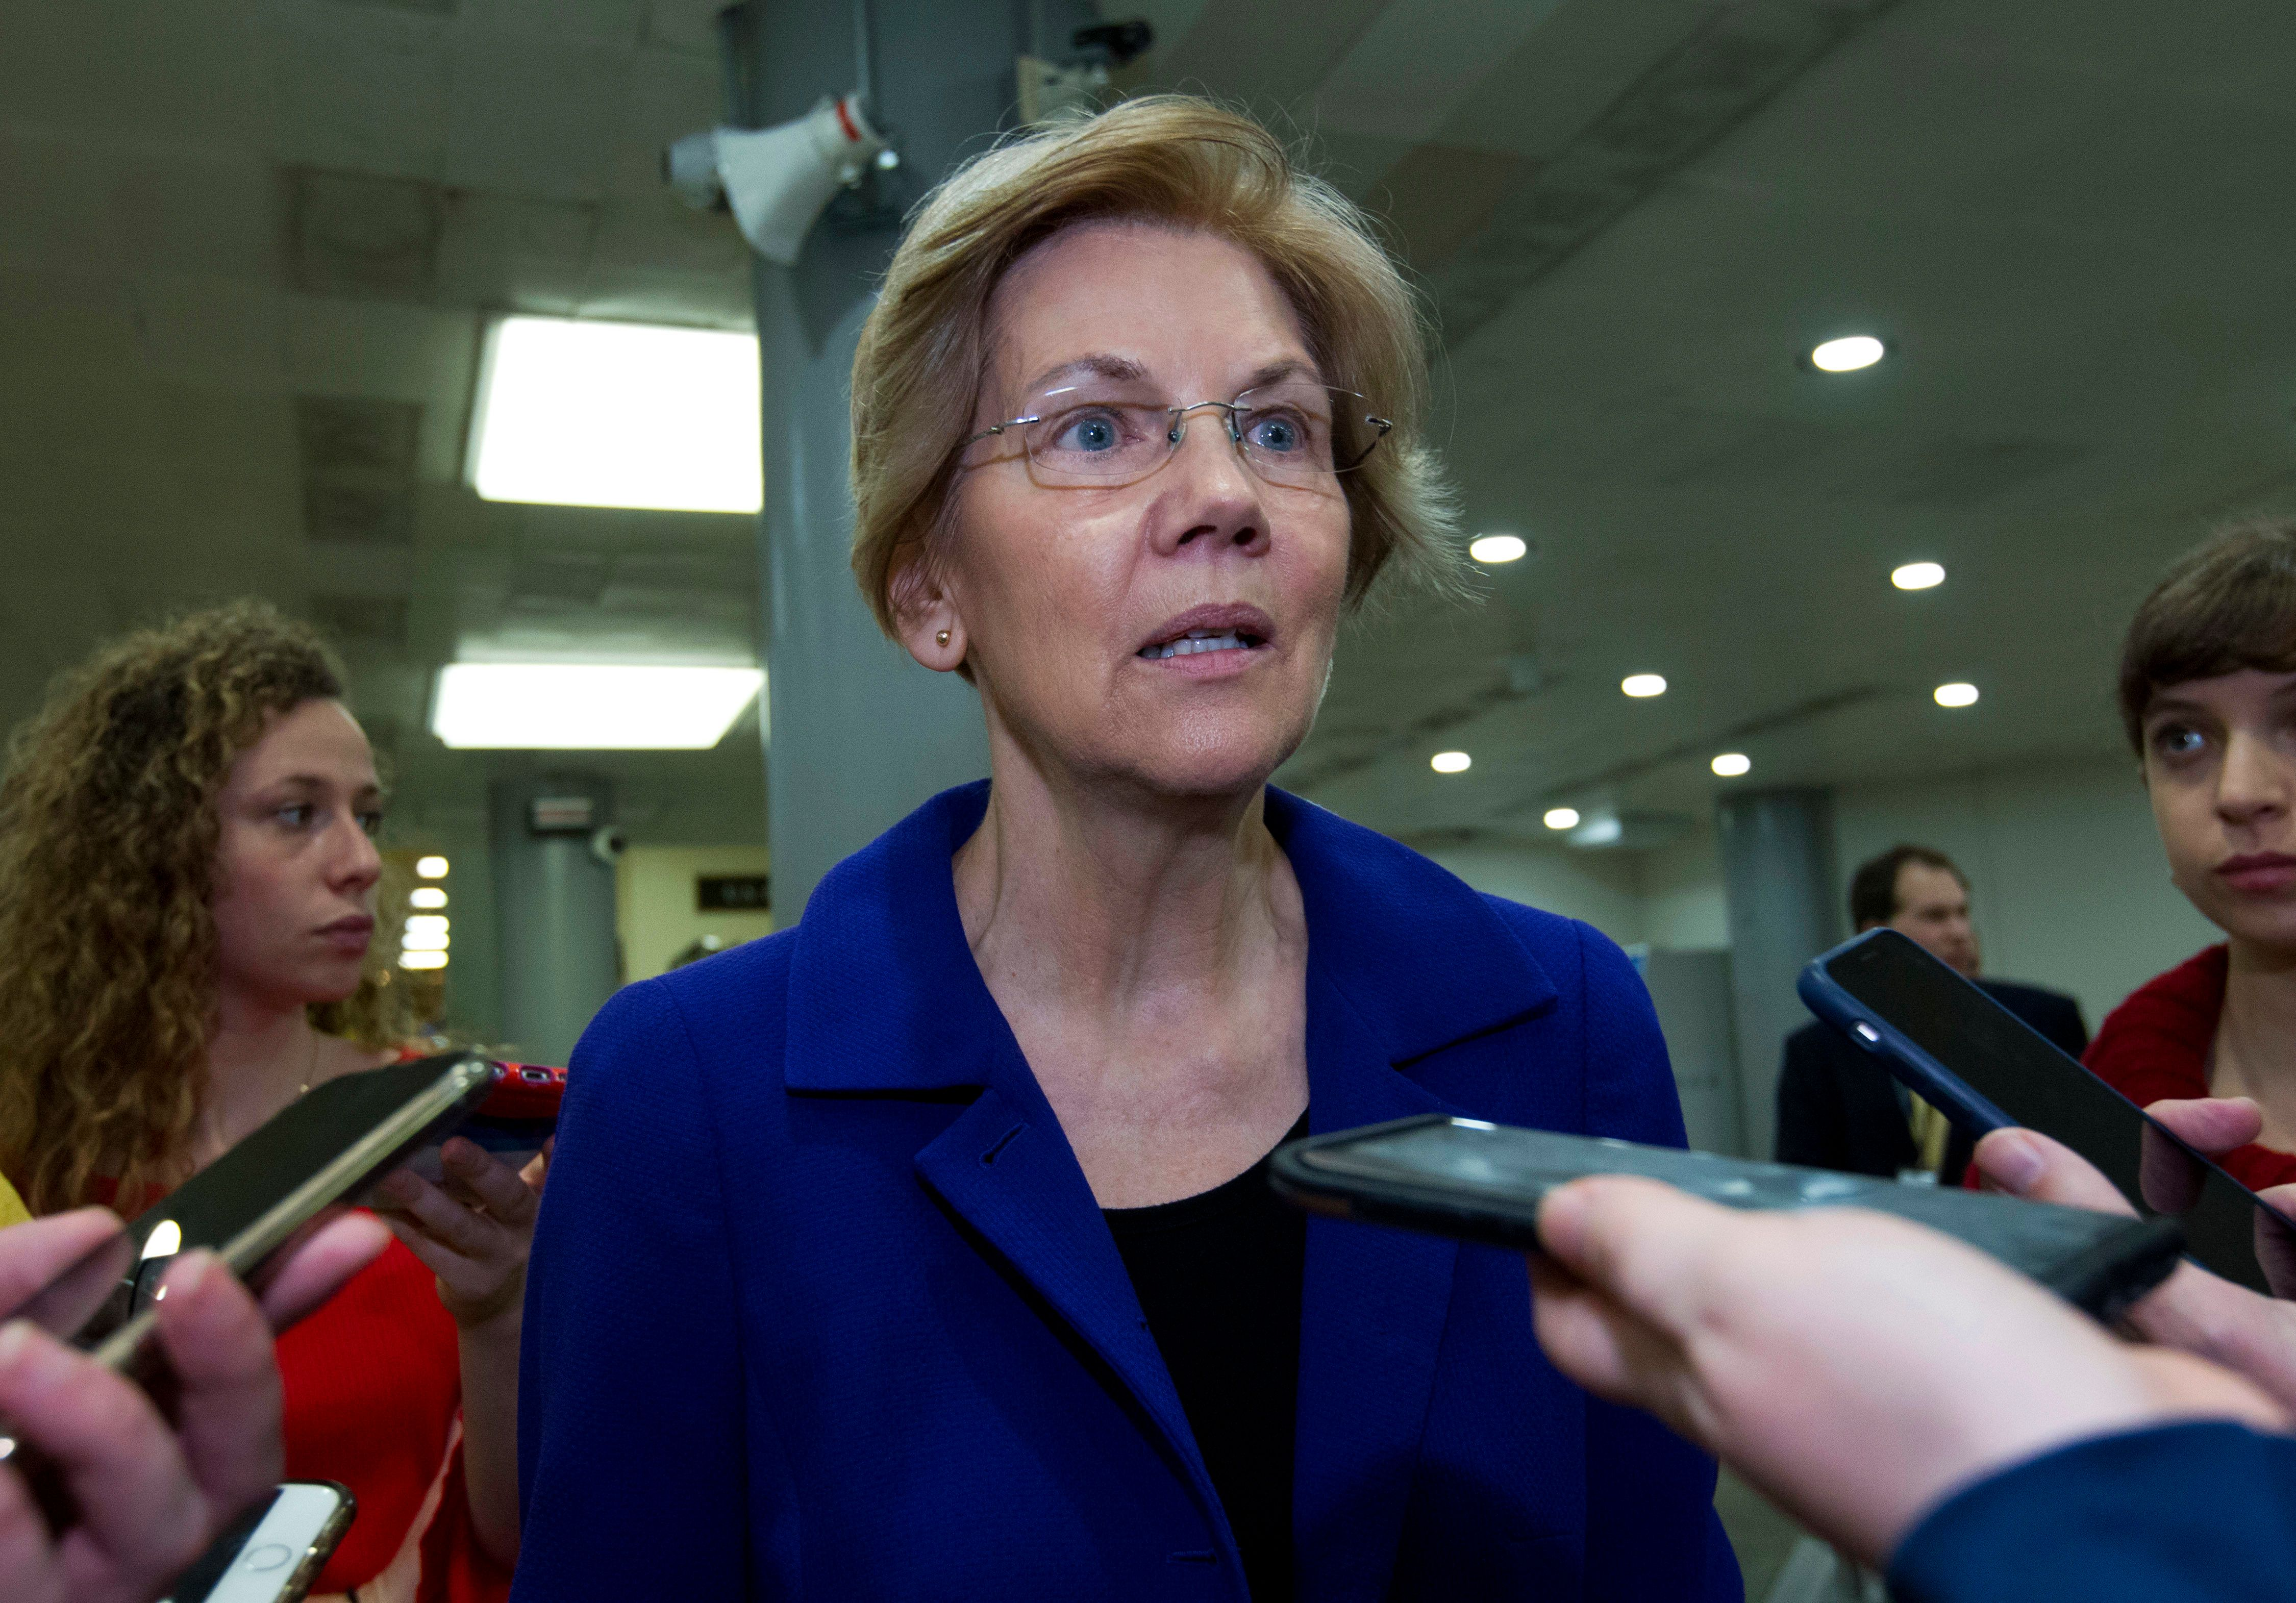 Sen. Elizabeth Warren D-Mass., speaks to reporters on his way to her office, as the Senate takes up a House-passed bill that would pay for President Donald Trump's border wall and avert a partial government shutdown, at the Capitol in Washington, Friday, Dec. 21, 2018. (AP Photo/Jose Luis Magana)